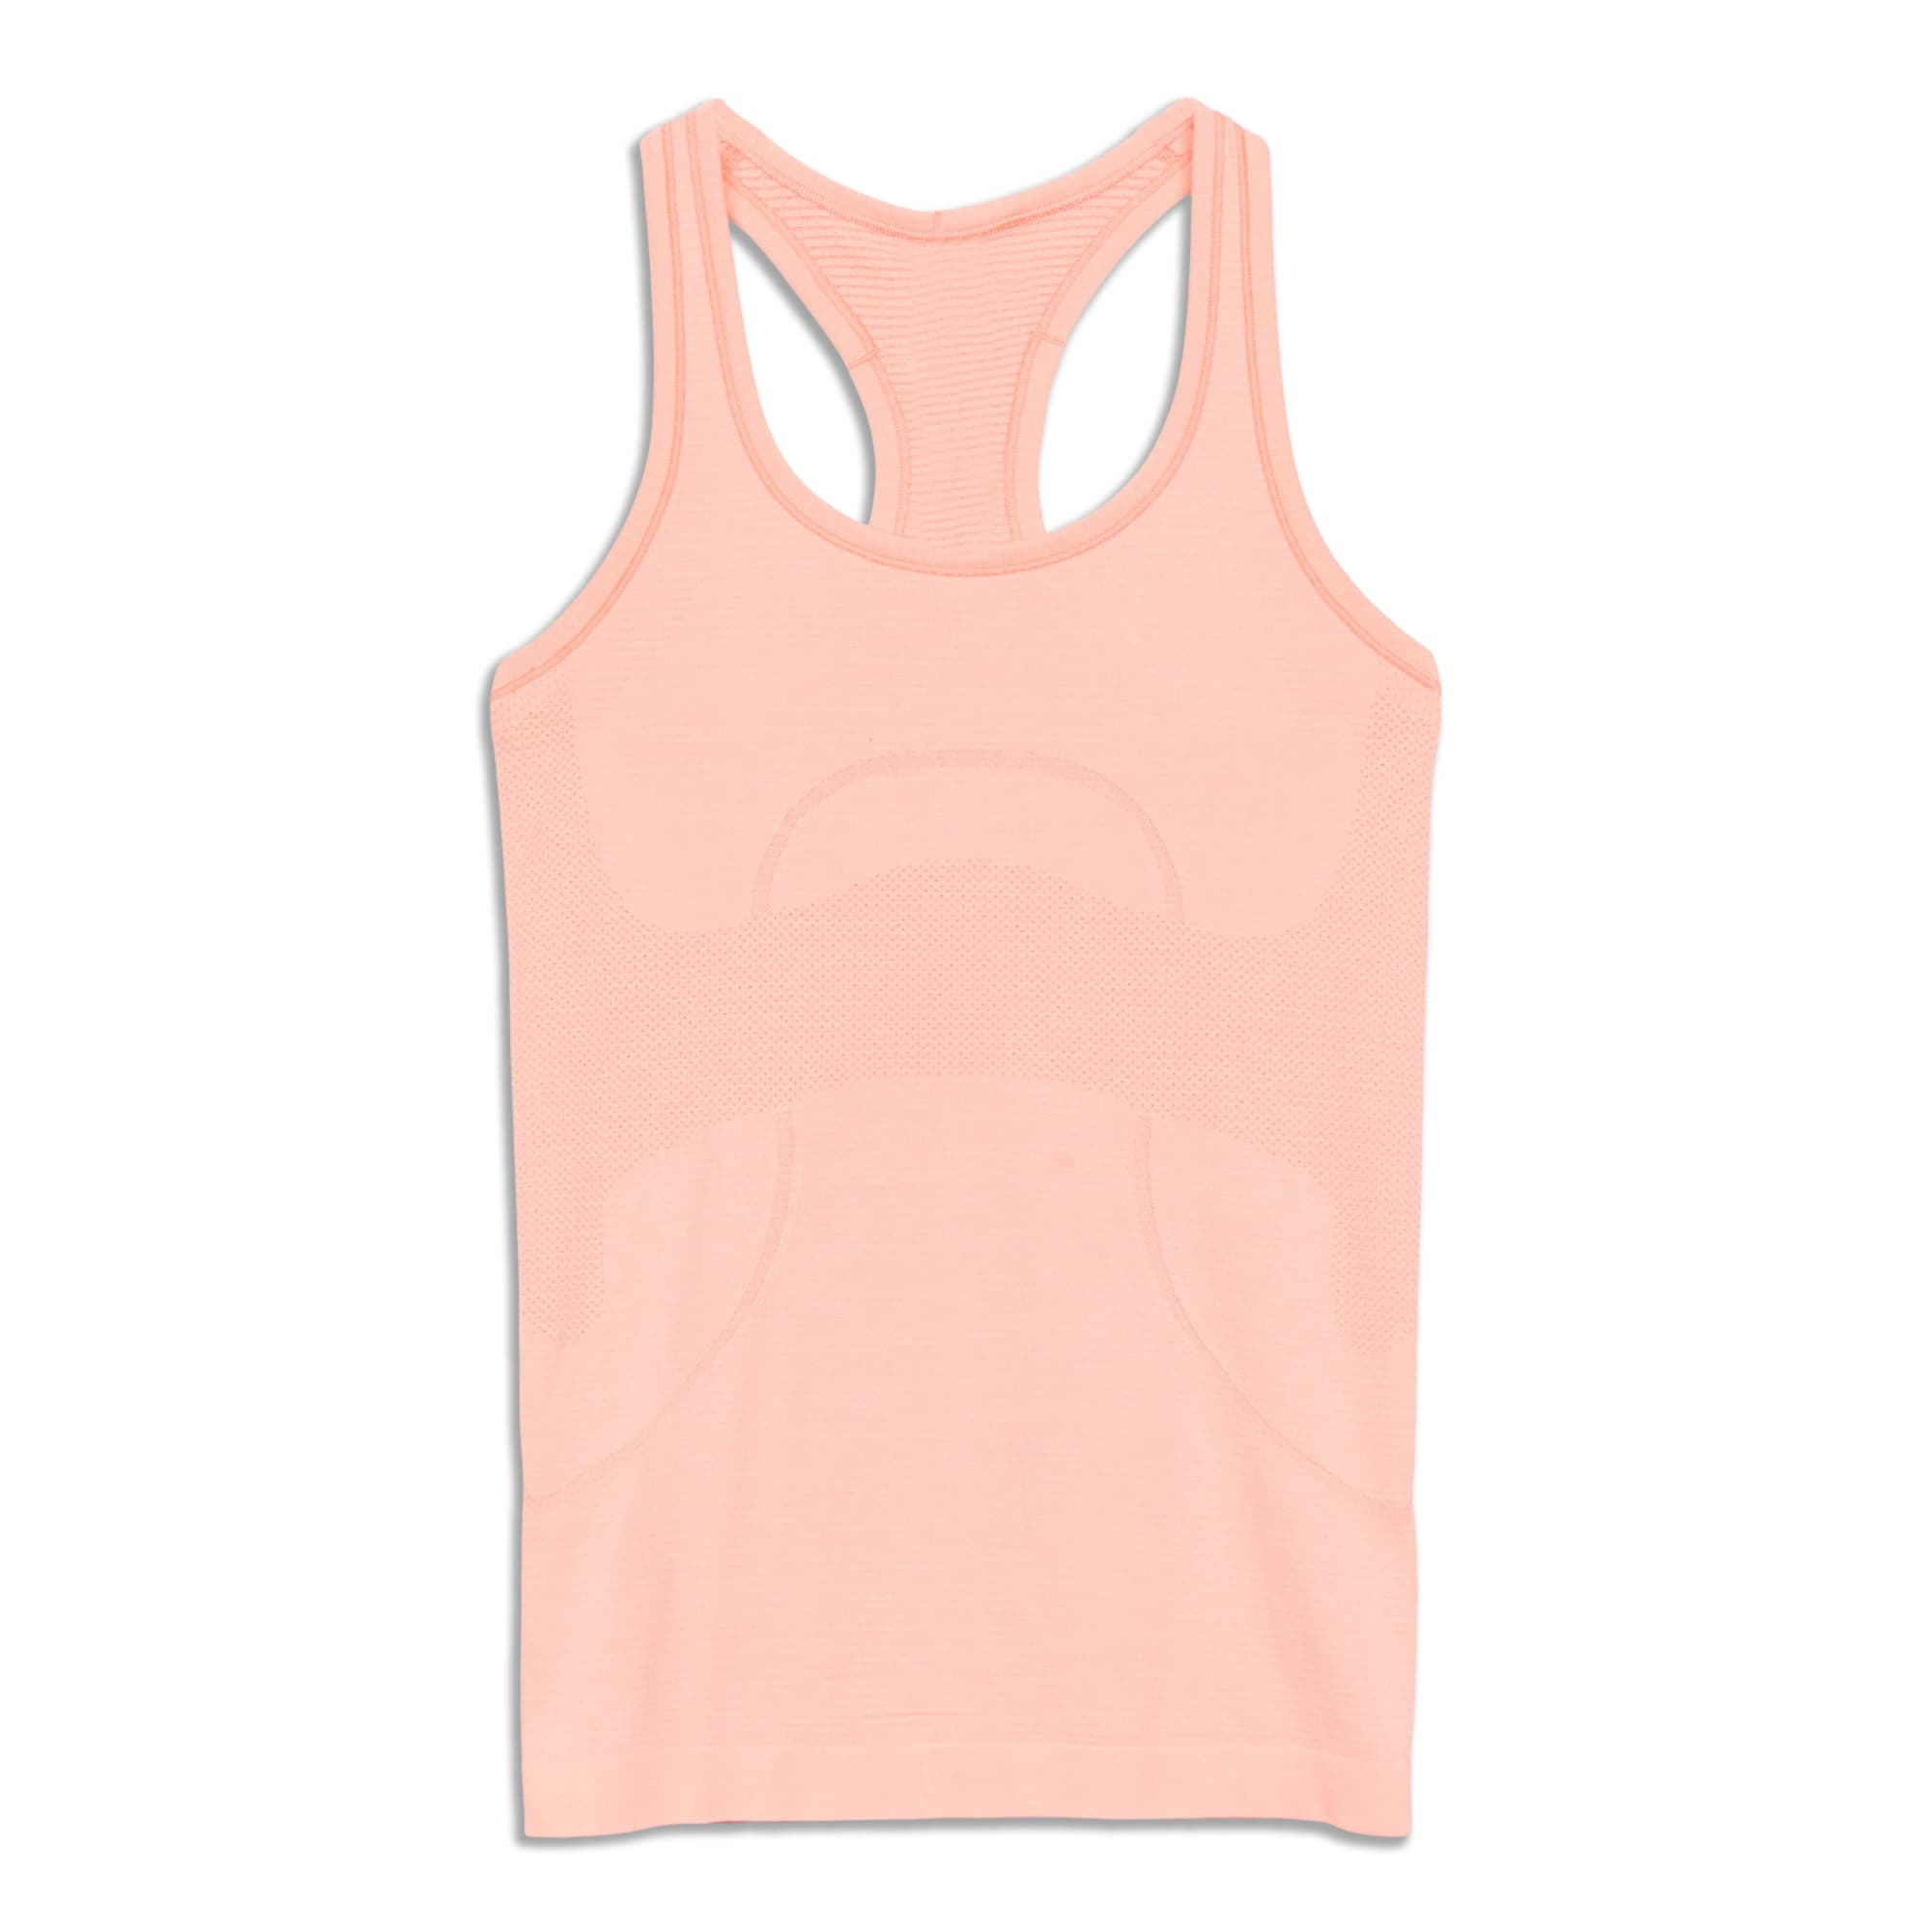 Main product image: Swiftly Tech Racerback Tank Top - Resale